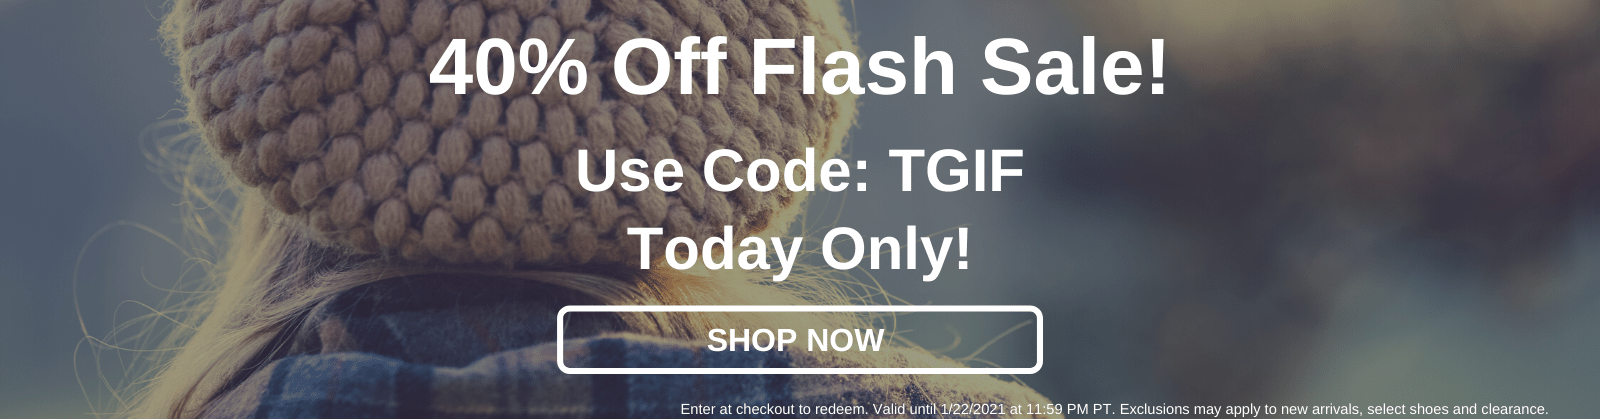 40% Off Flash Sale! Use Code: TGIF Today Only! [Shop Now]